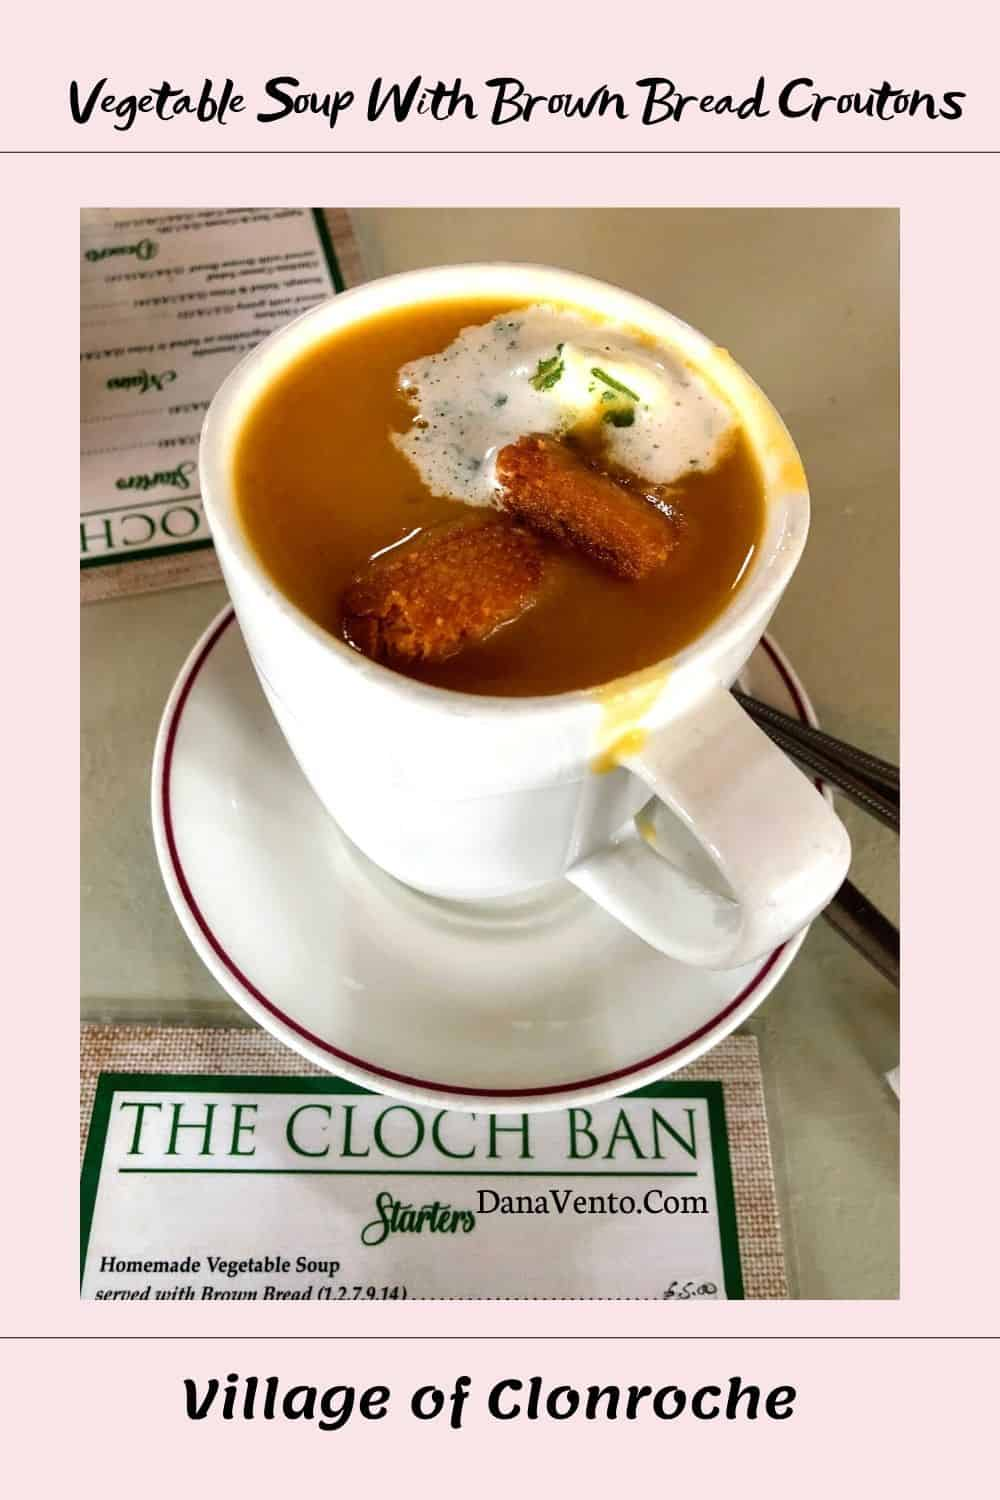 Vegetable Soup with Brown Bread Croutons